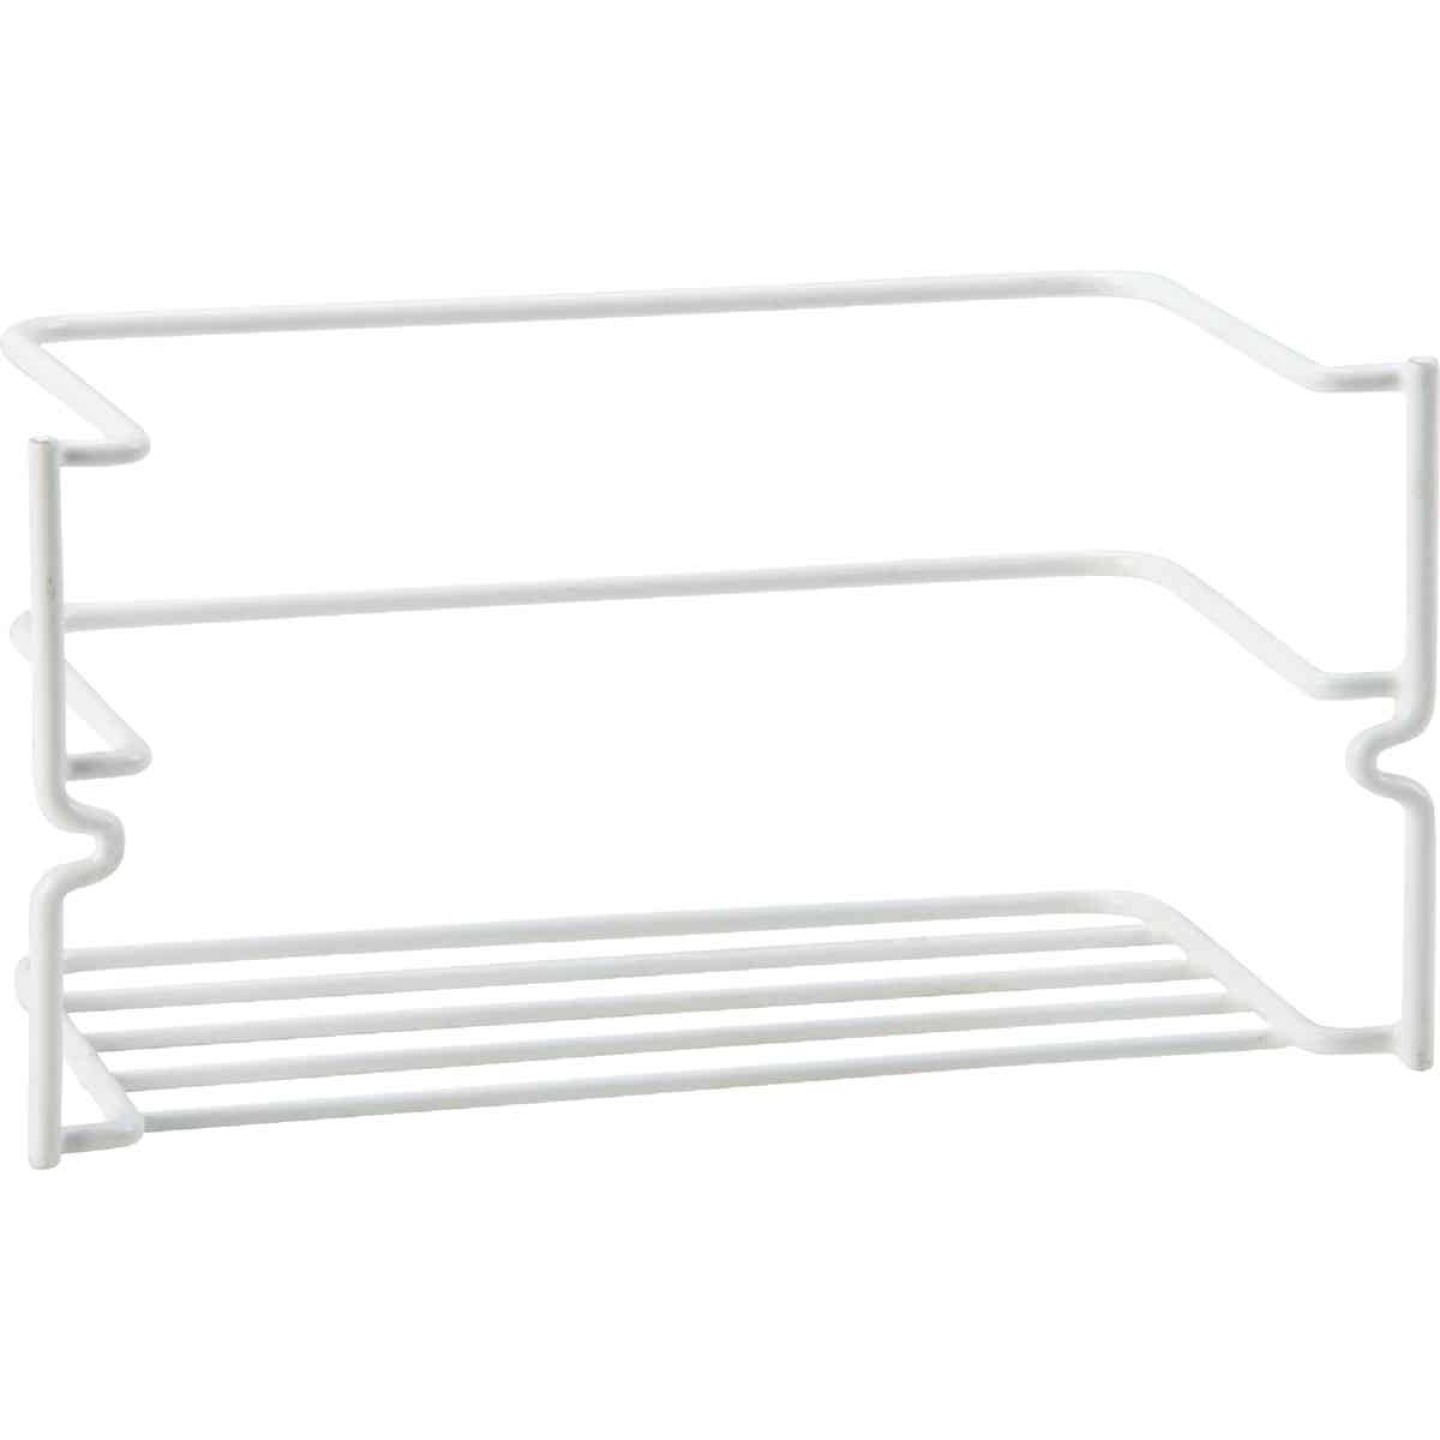 Grayline White Handy Caddy Cabinet Rack Image 1